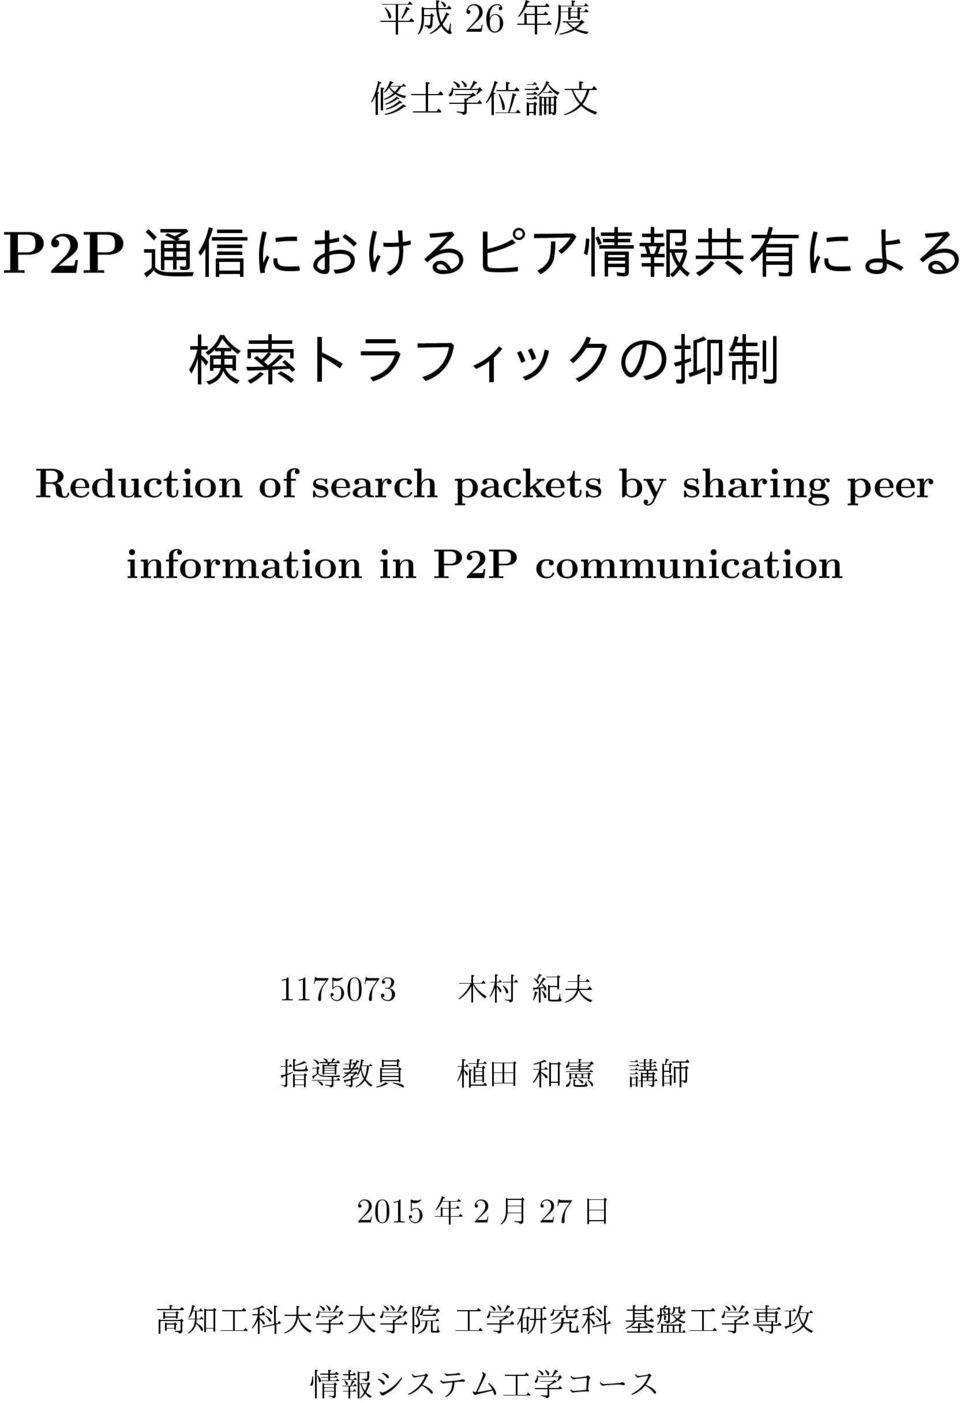 peer information in P2P